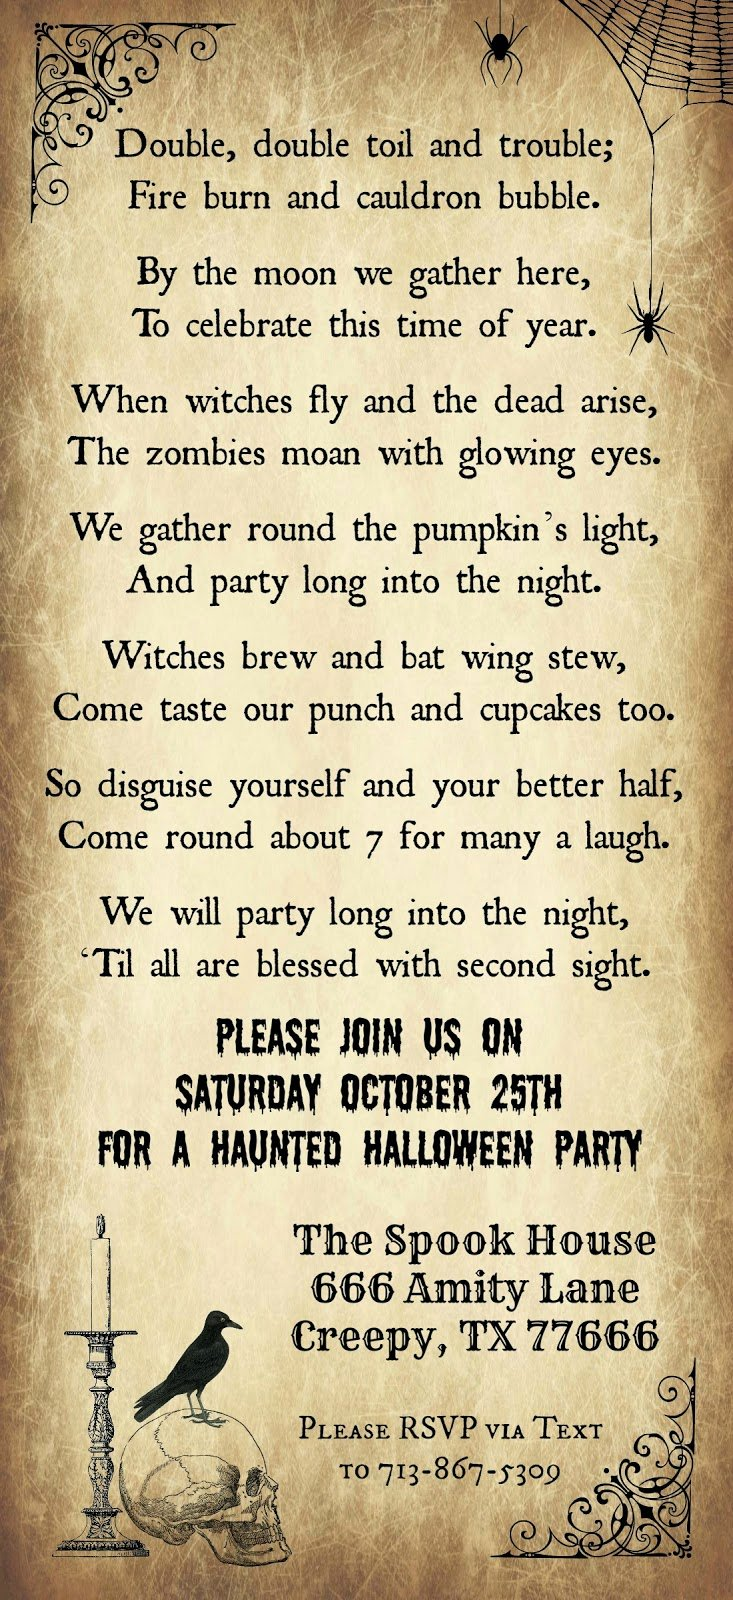 Halloween Party Invitation Template Lovely Crafty In Crosby Halloween Party Invitation 2014